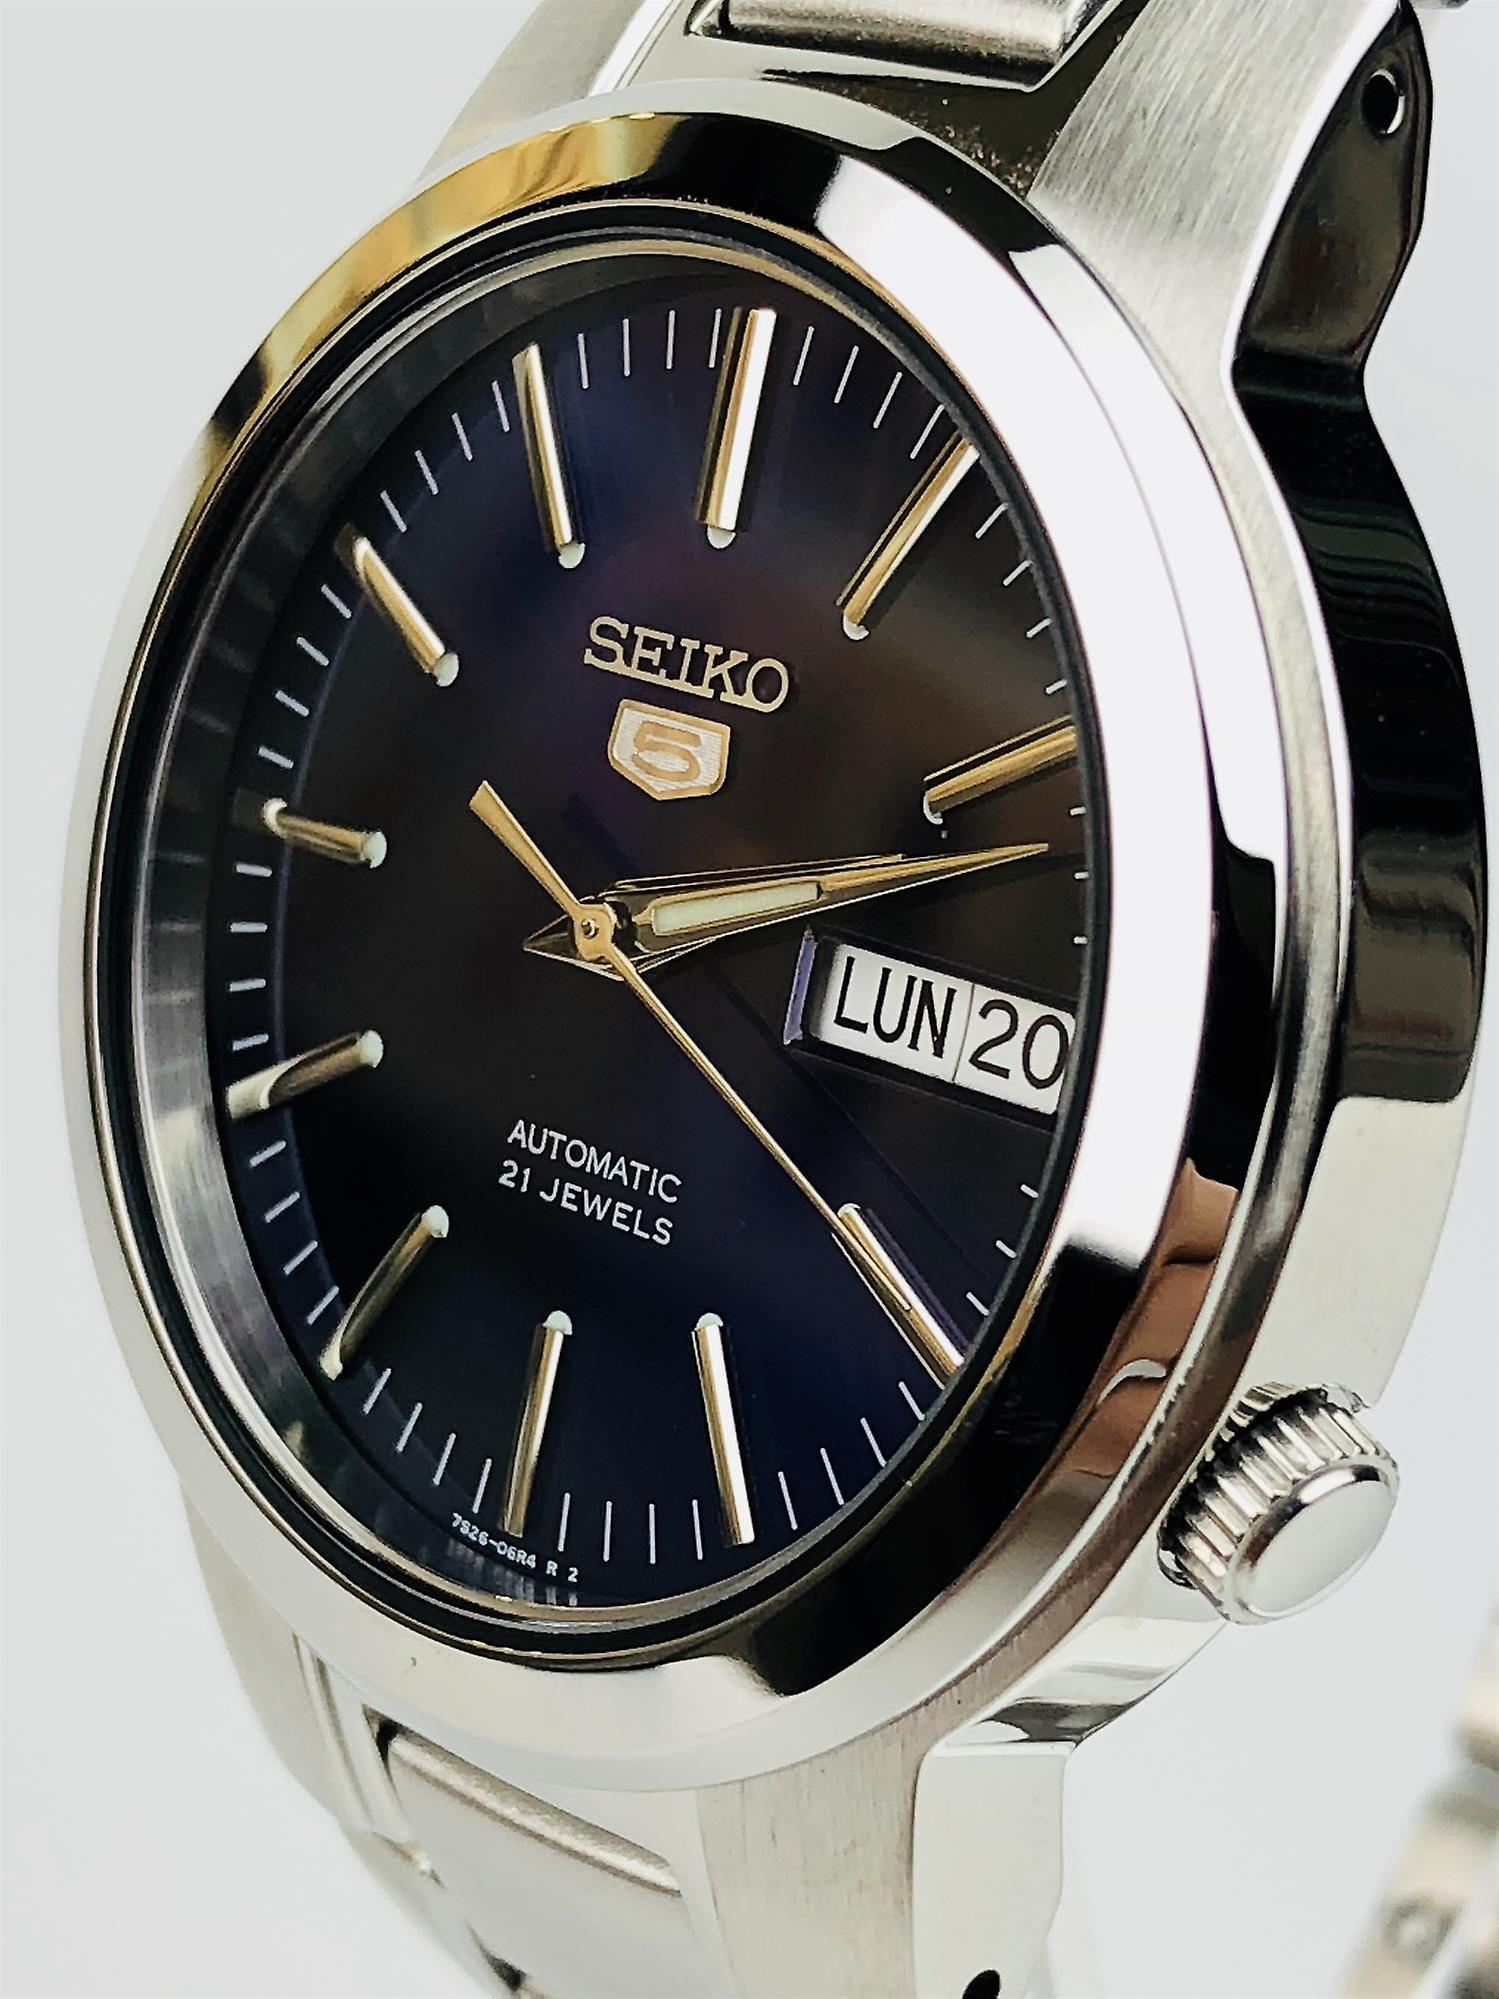 Seiko 5 Automatic Blue Dial Stainless Steel Men's Watch SNKA05K1